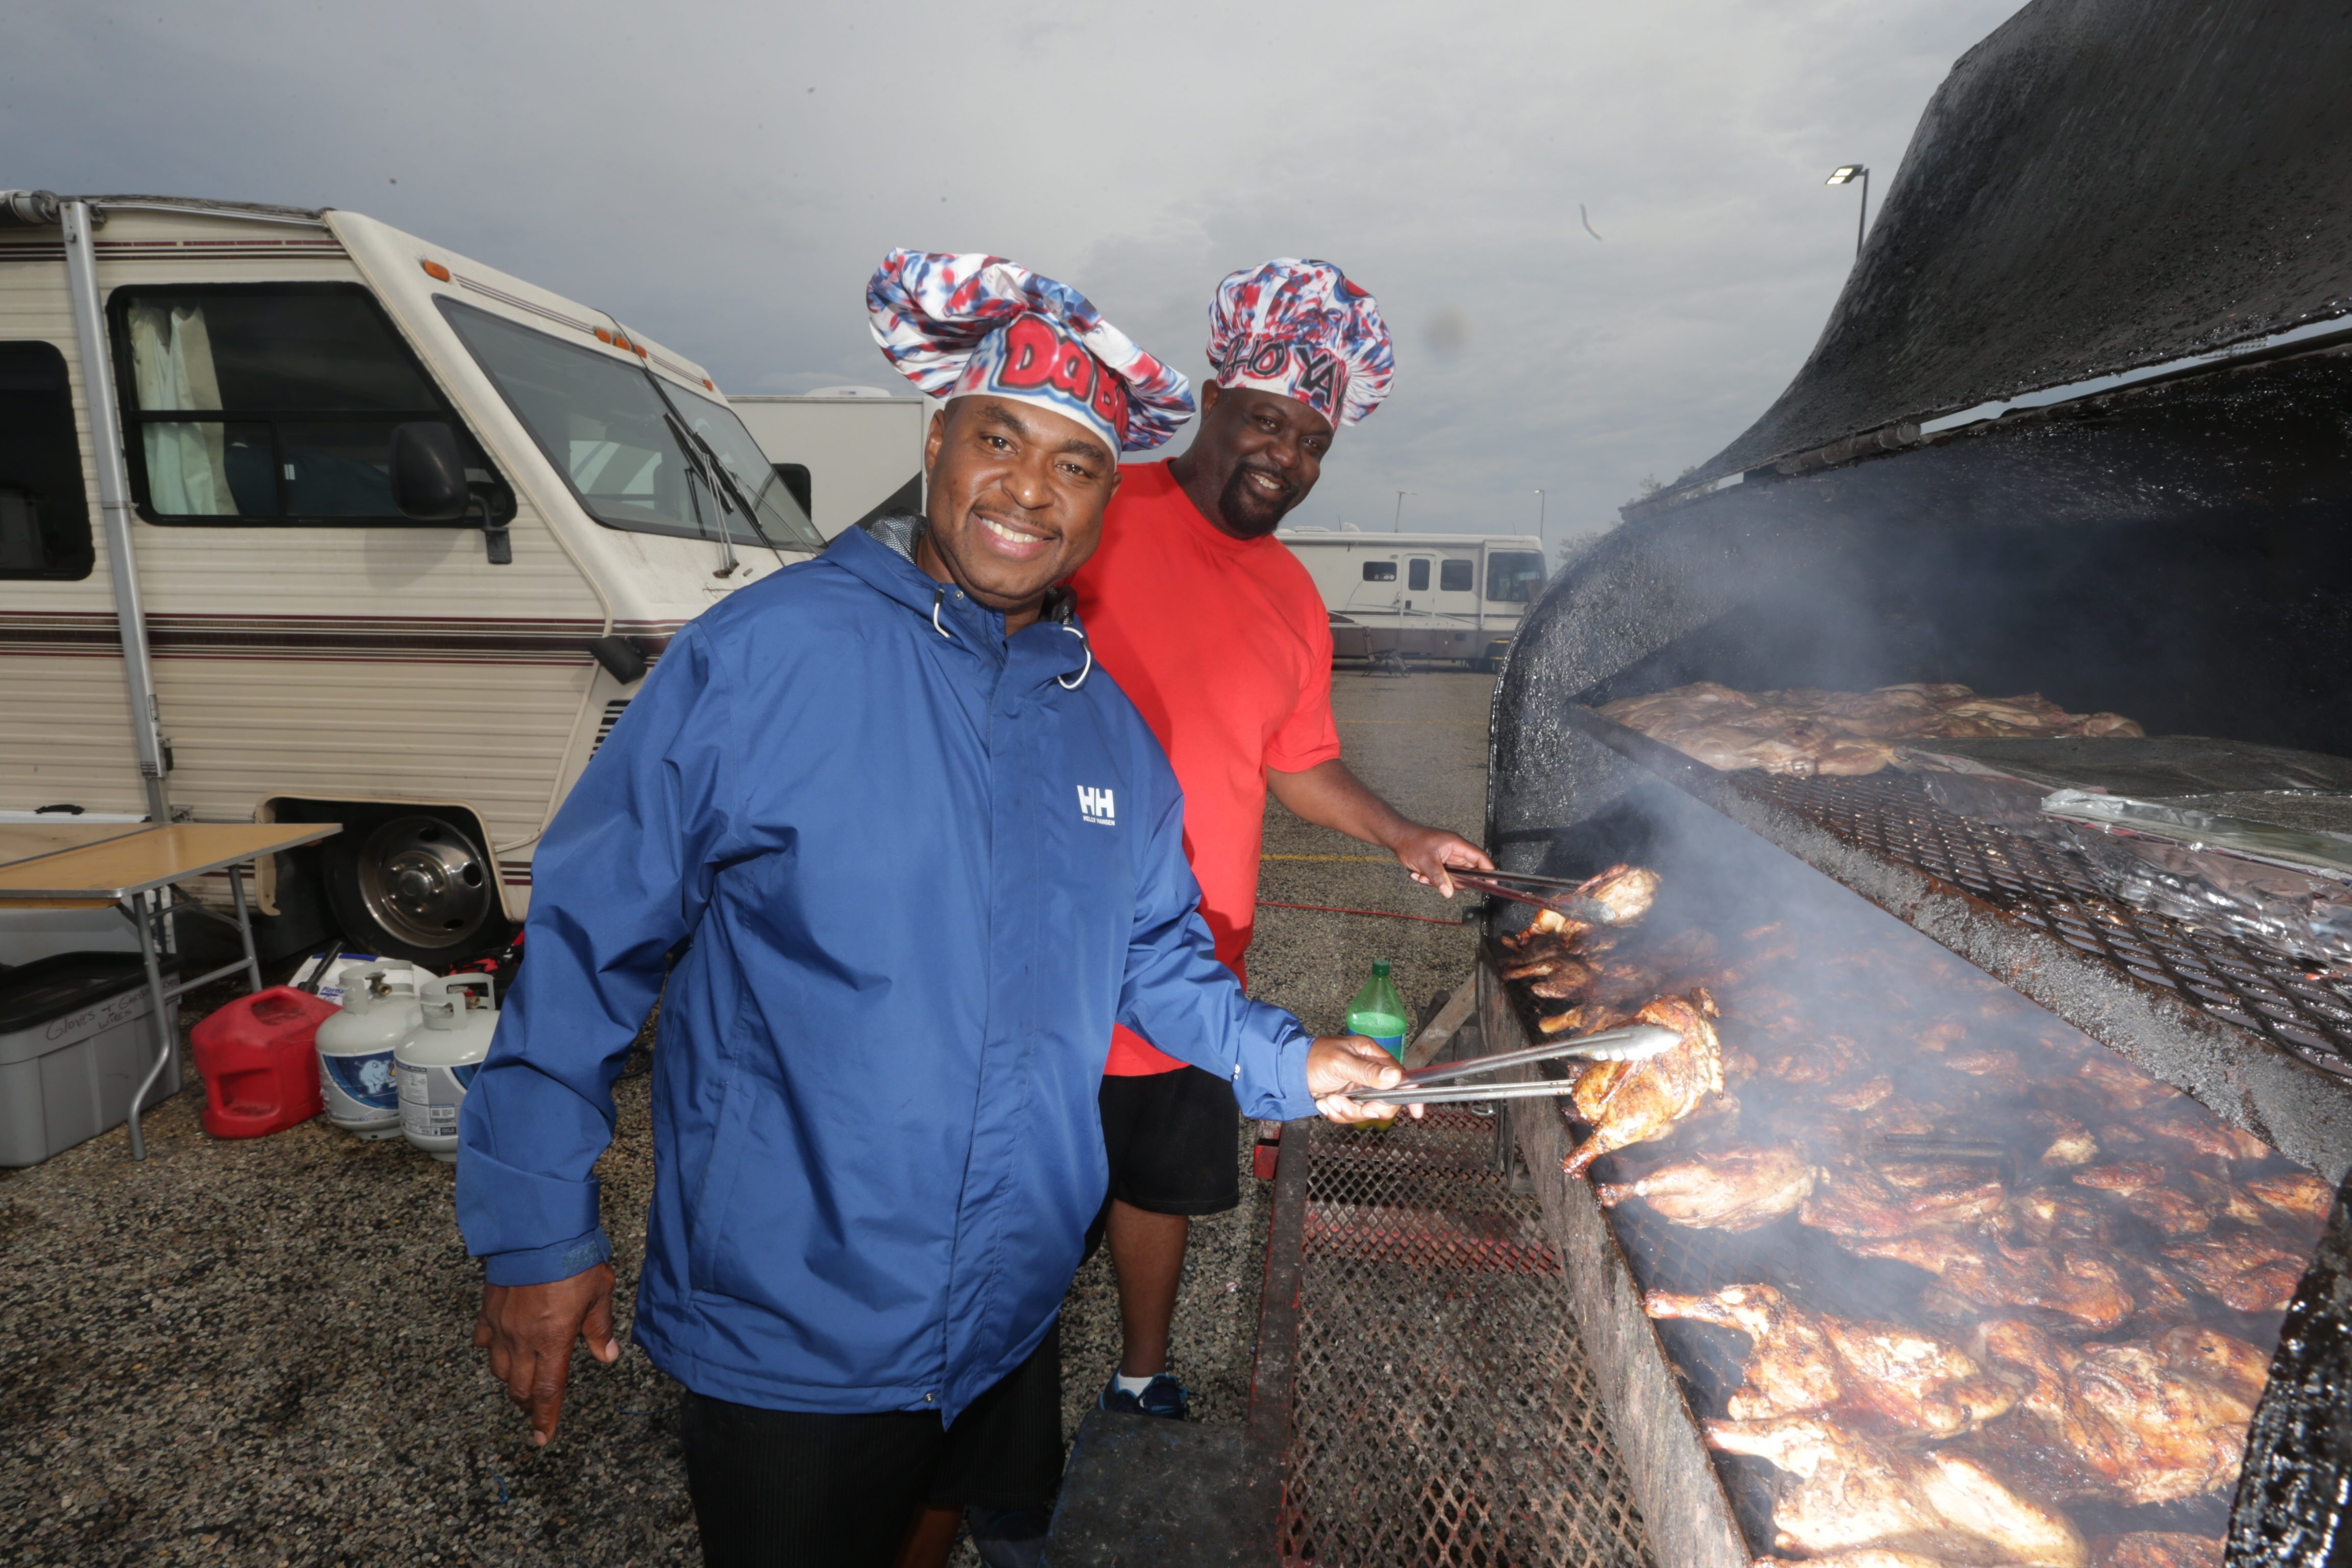 Bills game regulars Derrick Norman, left, and Richard Peter-son grill chicken in Ralph Wilson Stadium RV Lot on Saturday.